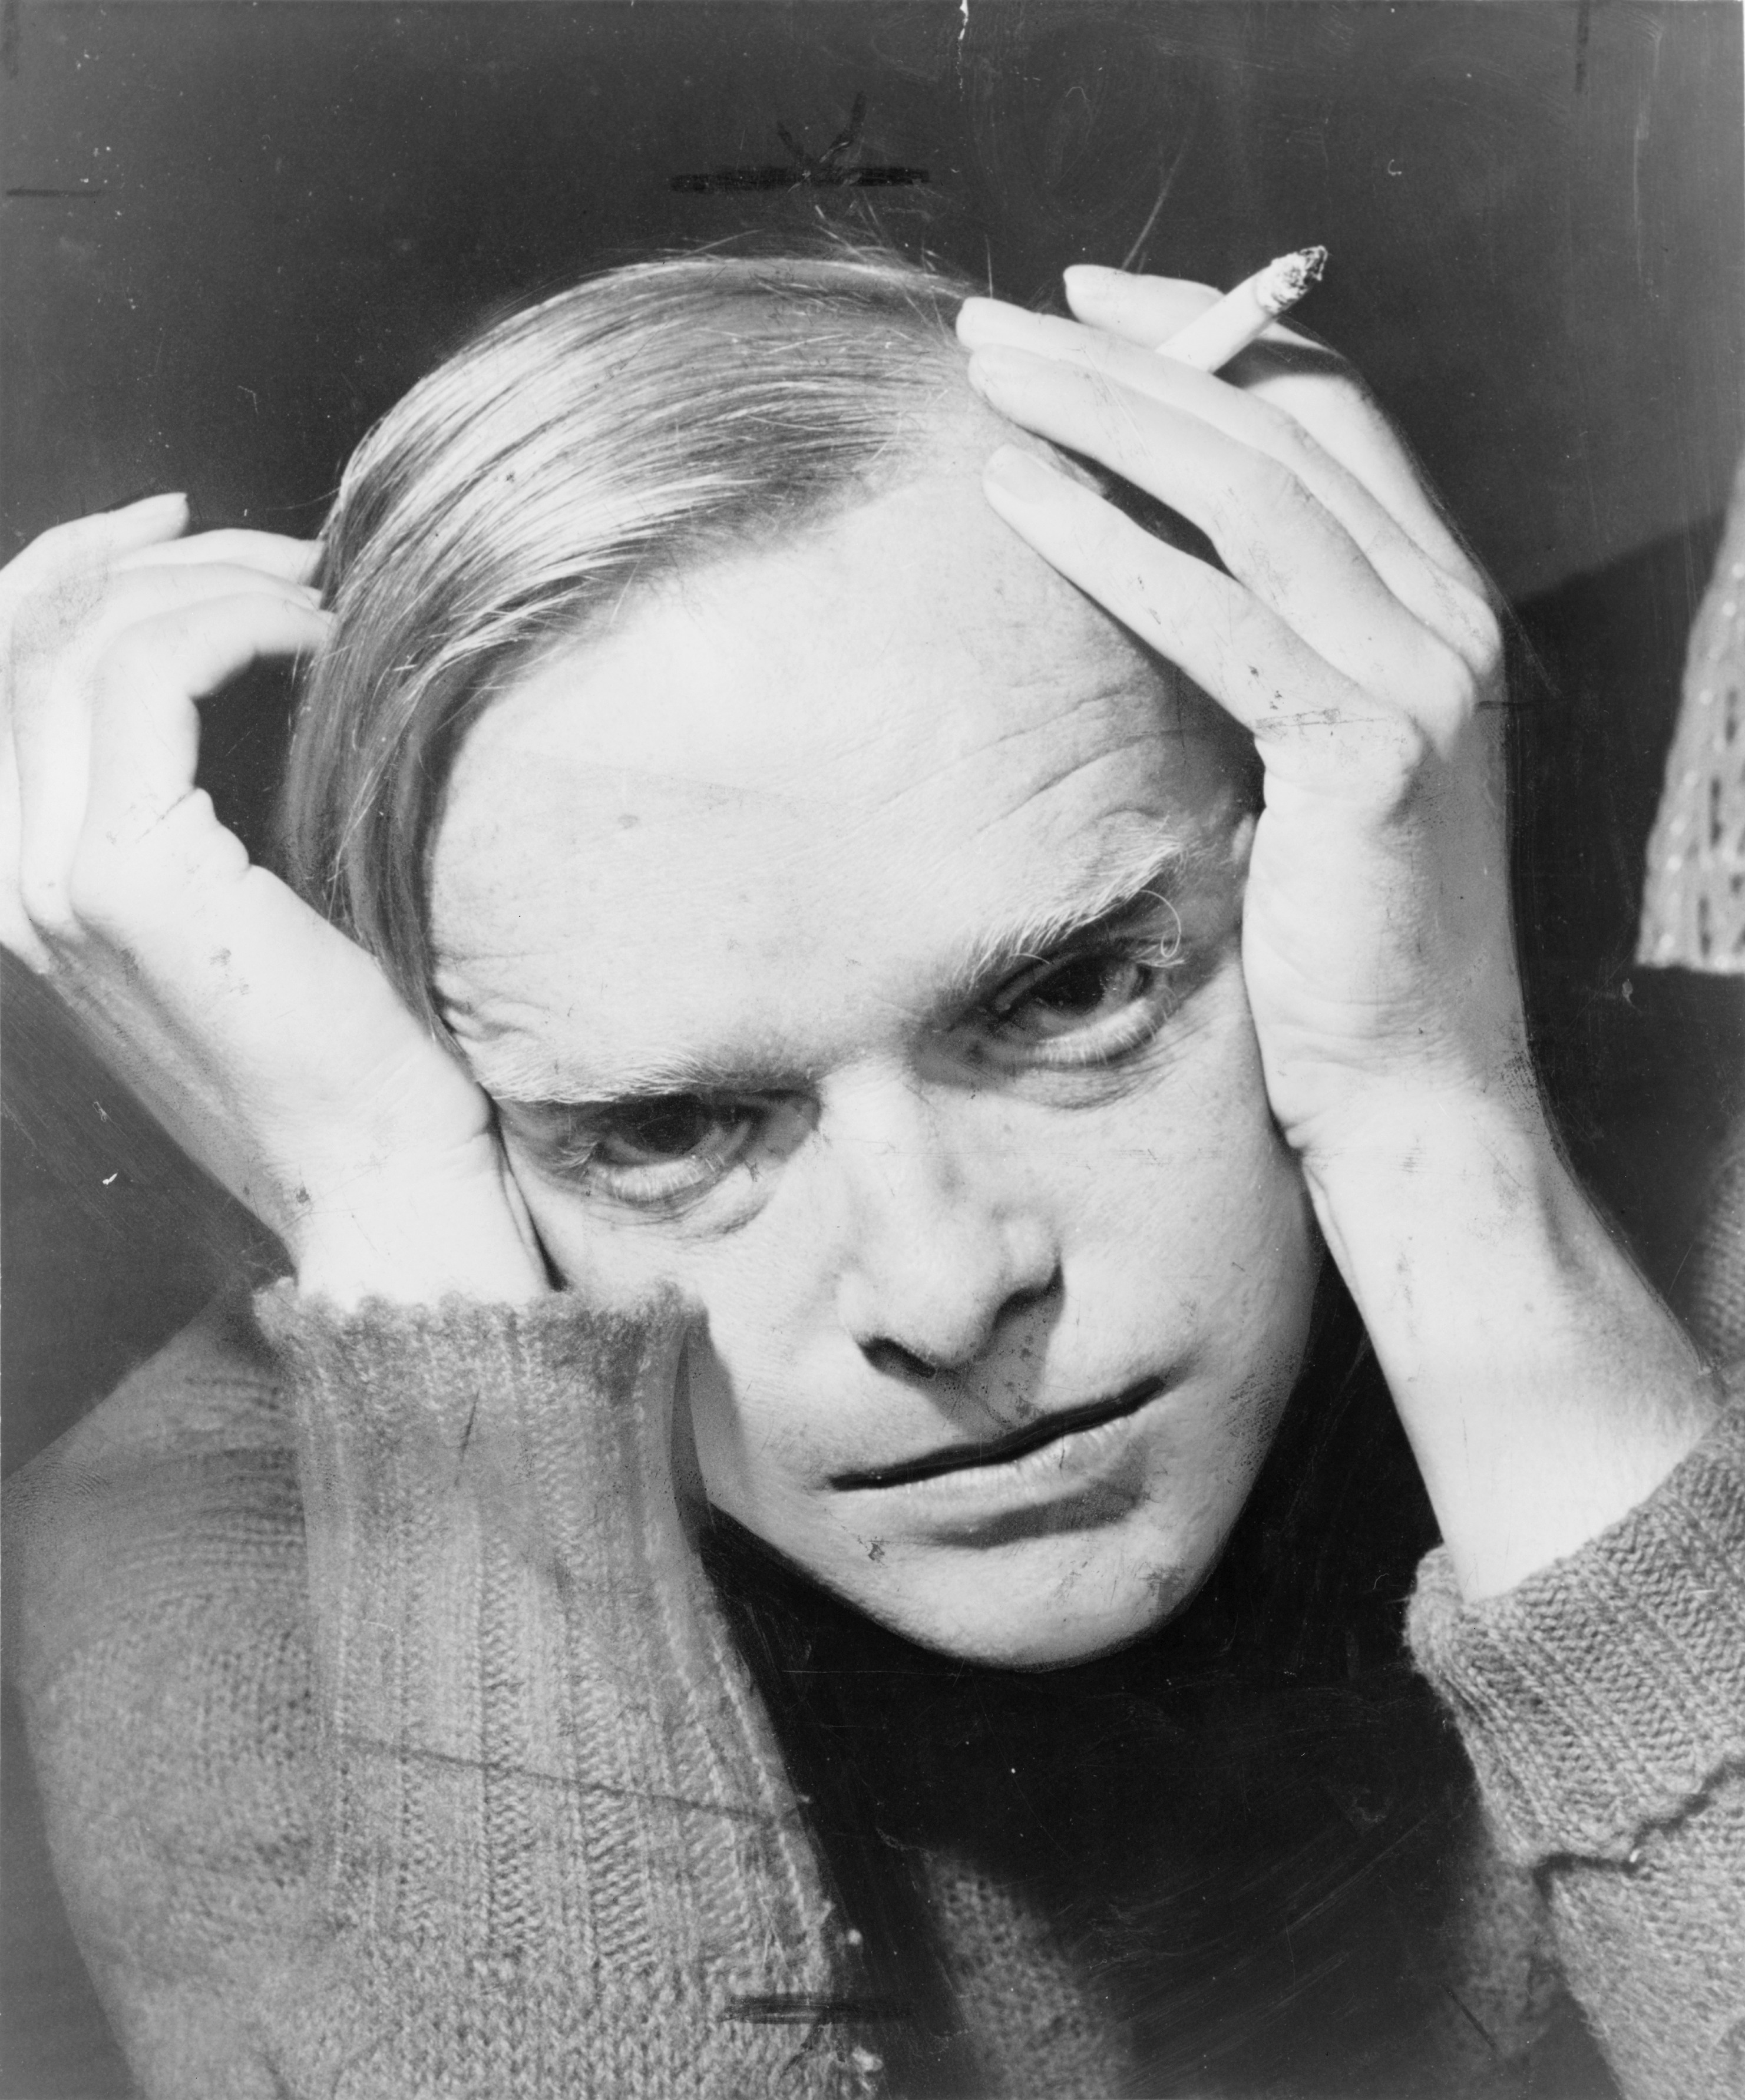 Author and provocateur, Truman Capote, photographed by Robert Higgins in 1959.